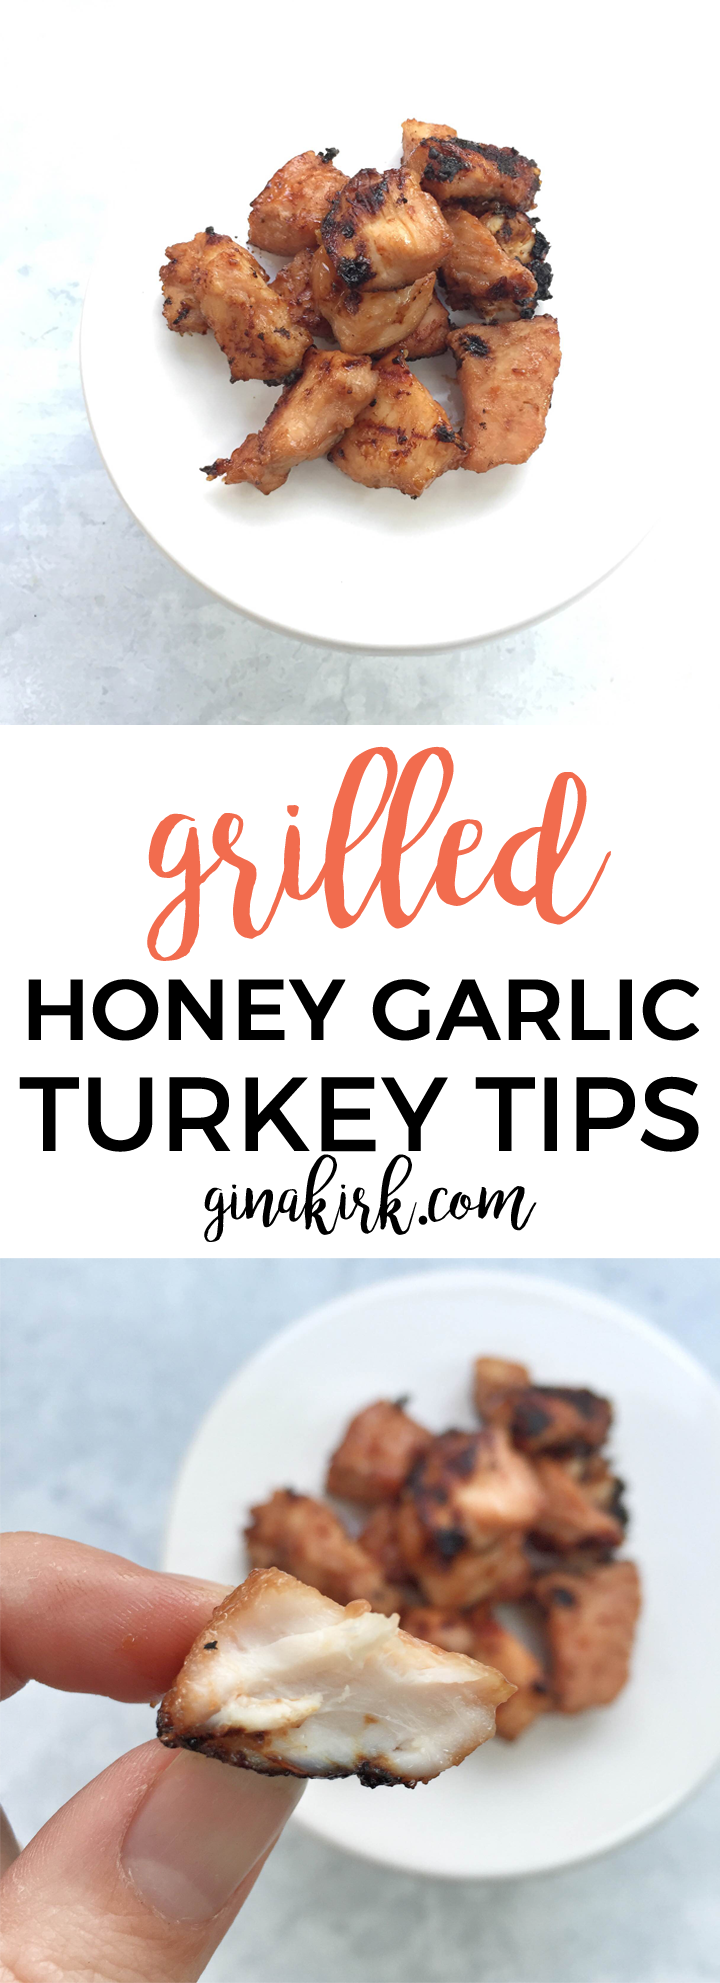 Honey garlic turkey tips | Summer grilling tips | Marinated turkey on the grill recipes! GinaKirk.com @ginaekirk